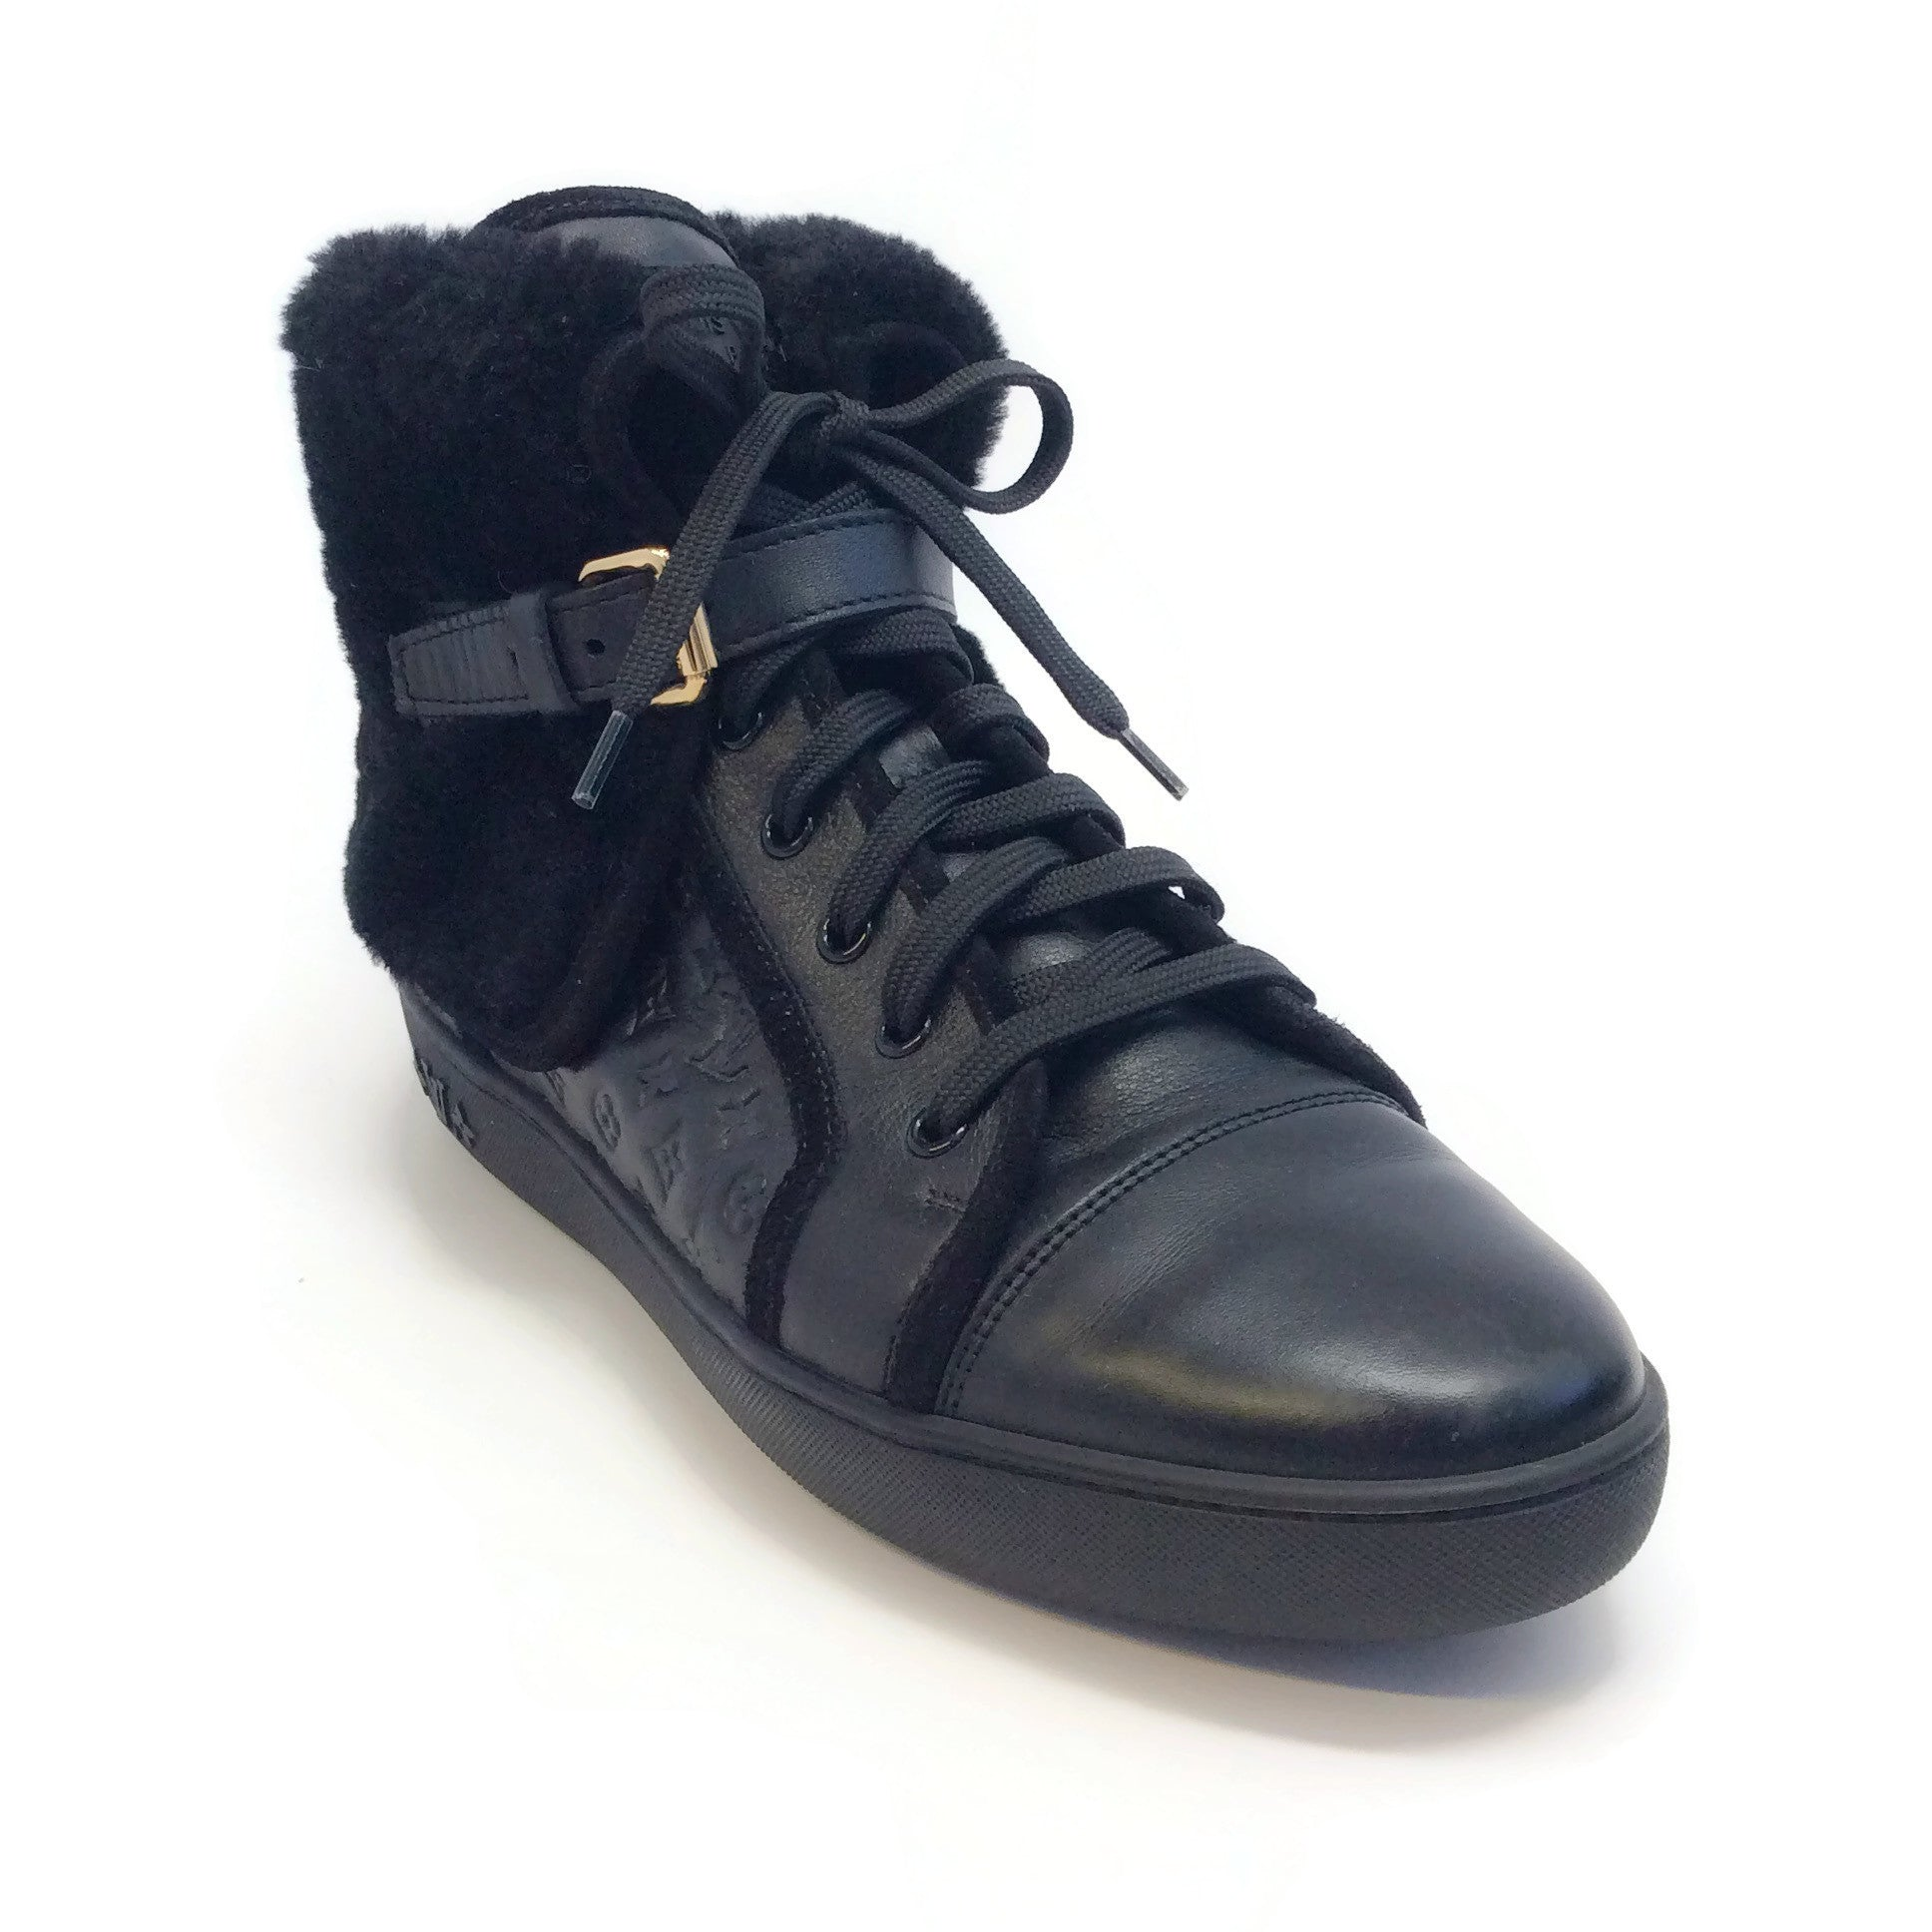 Louis Vuitton Black Monogram Empreinte Leather and Shearling High Top Sneakers